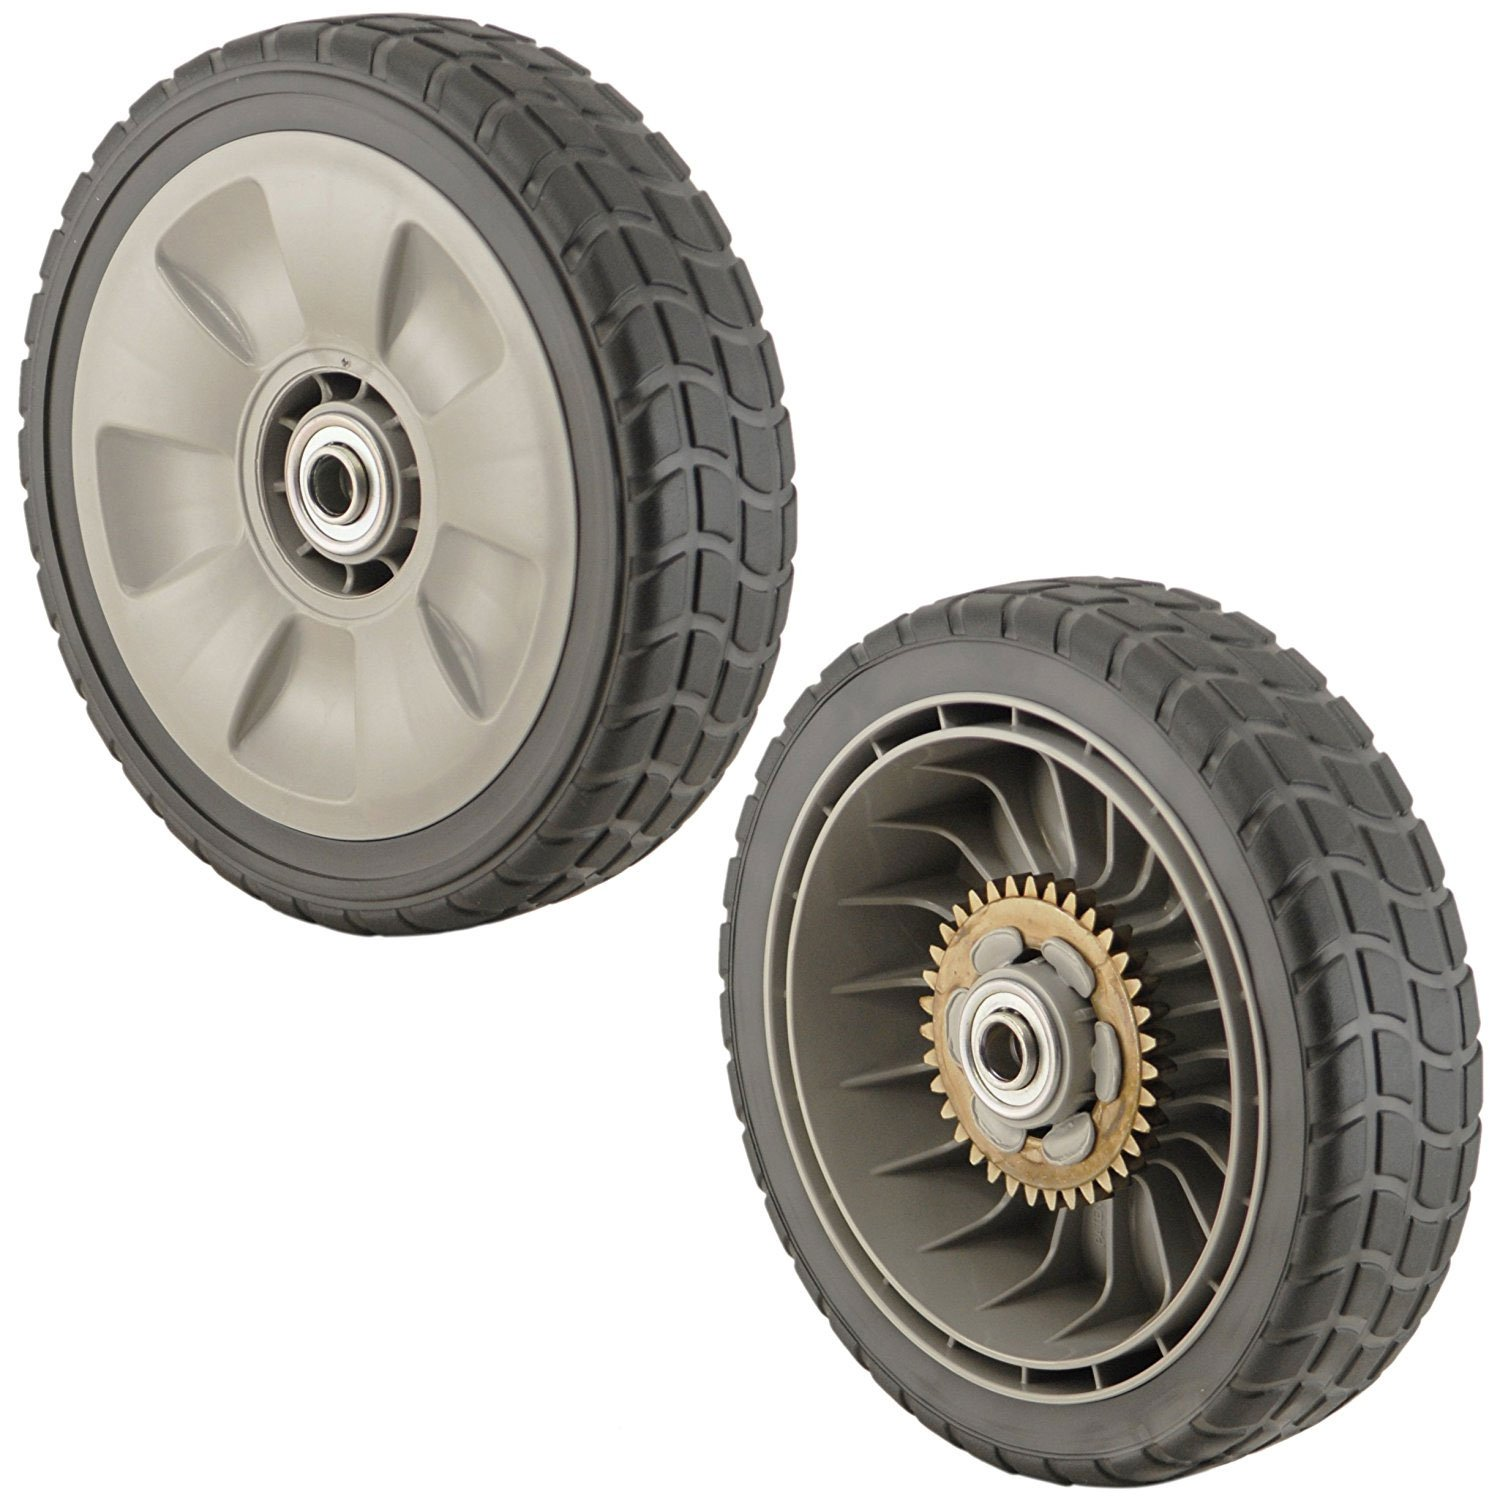 Honda 42710-VE2-M02ZE (Replaces 42710-VE2-M01ZE) Lawn Mower Rear Wheel Set of 2 by Honda